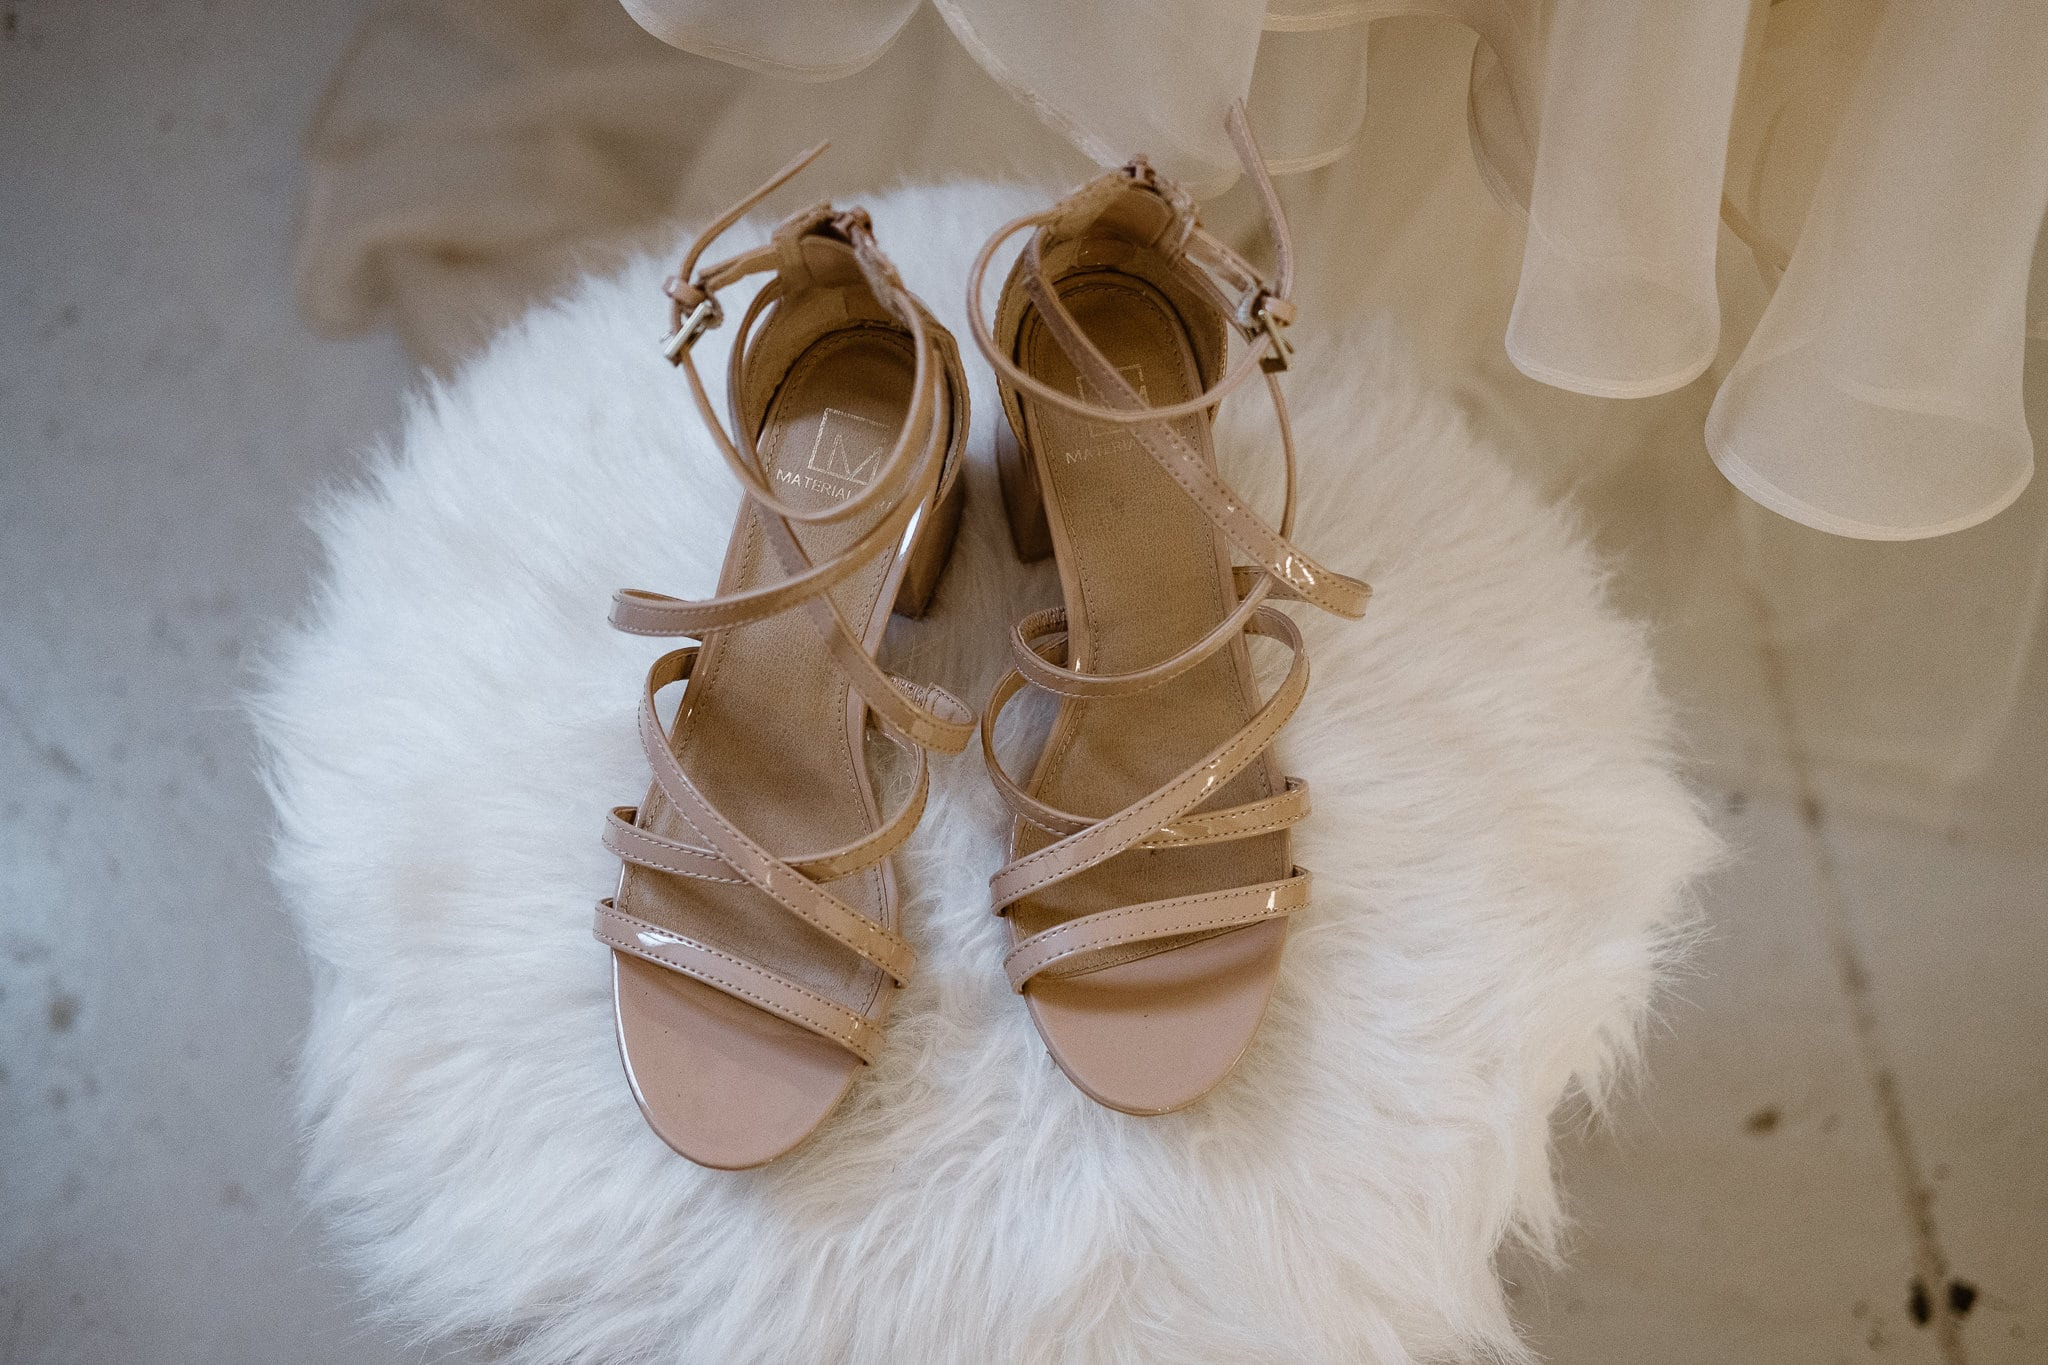 St Vrain Wedding Photographer | Longmont Wedding Photographer | Colorado Winter Wedding Photographer, Colorado industrial chic wedding, bride's shoes